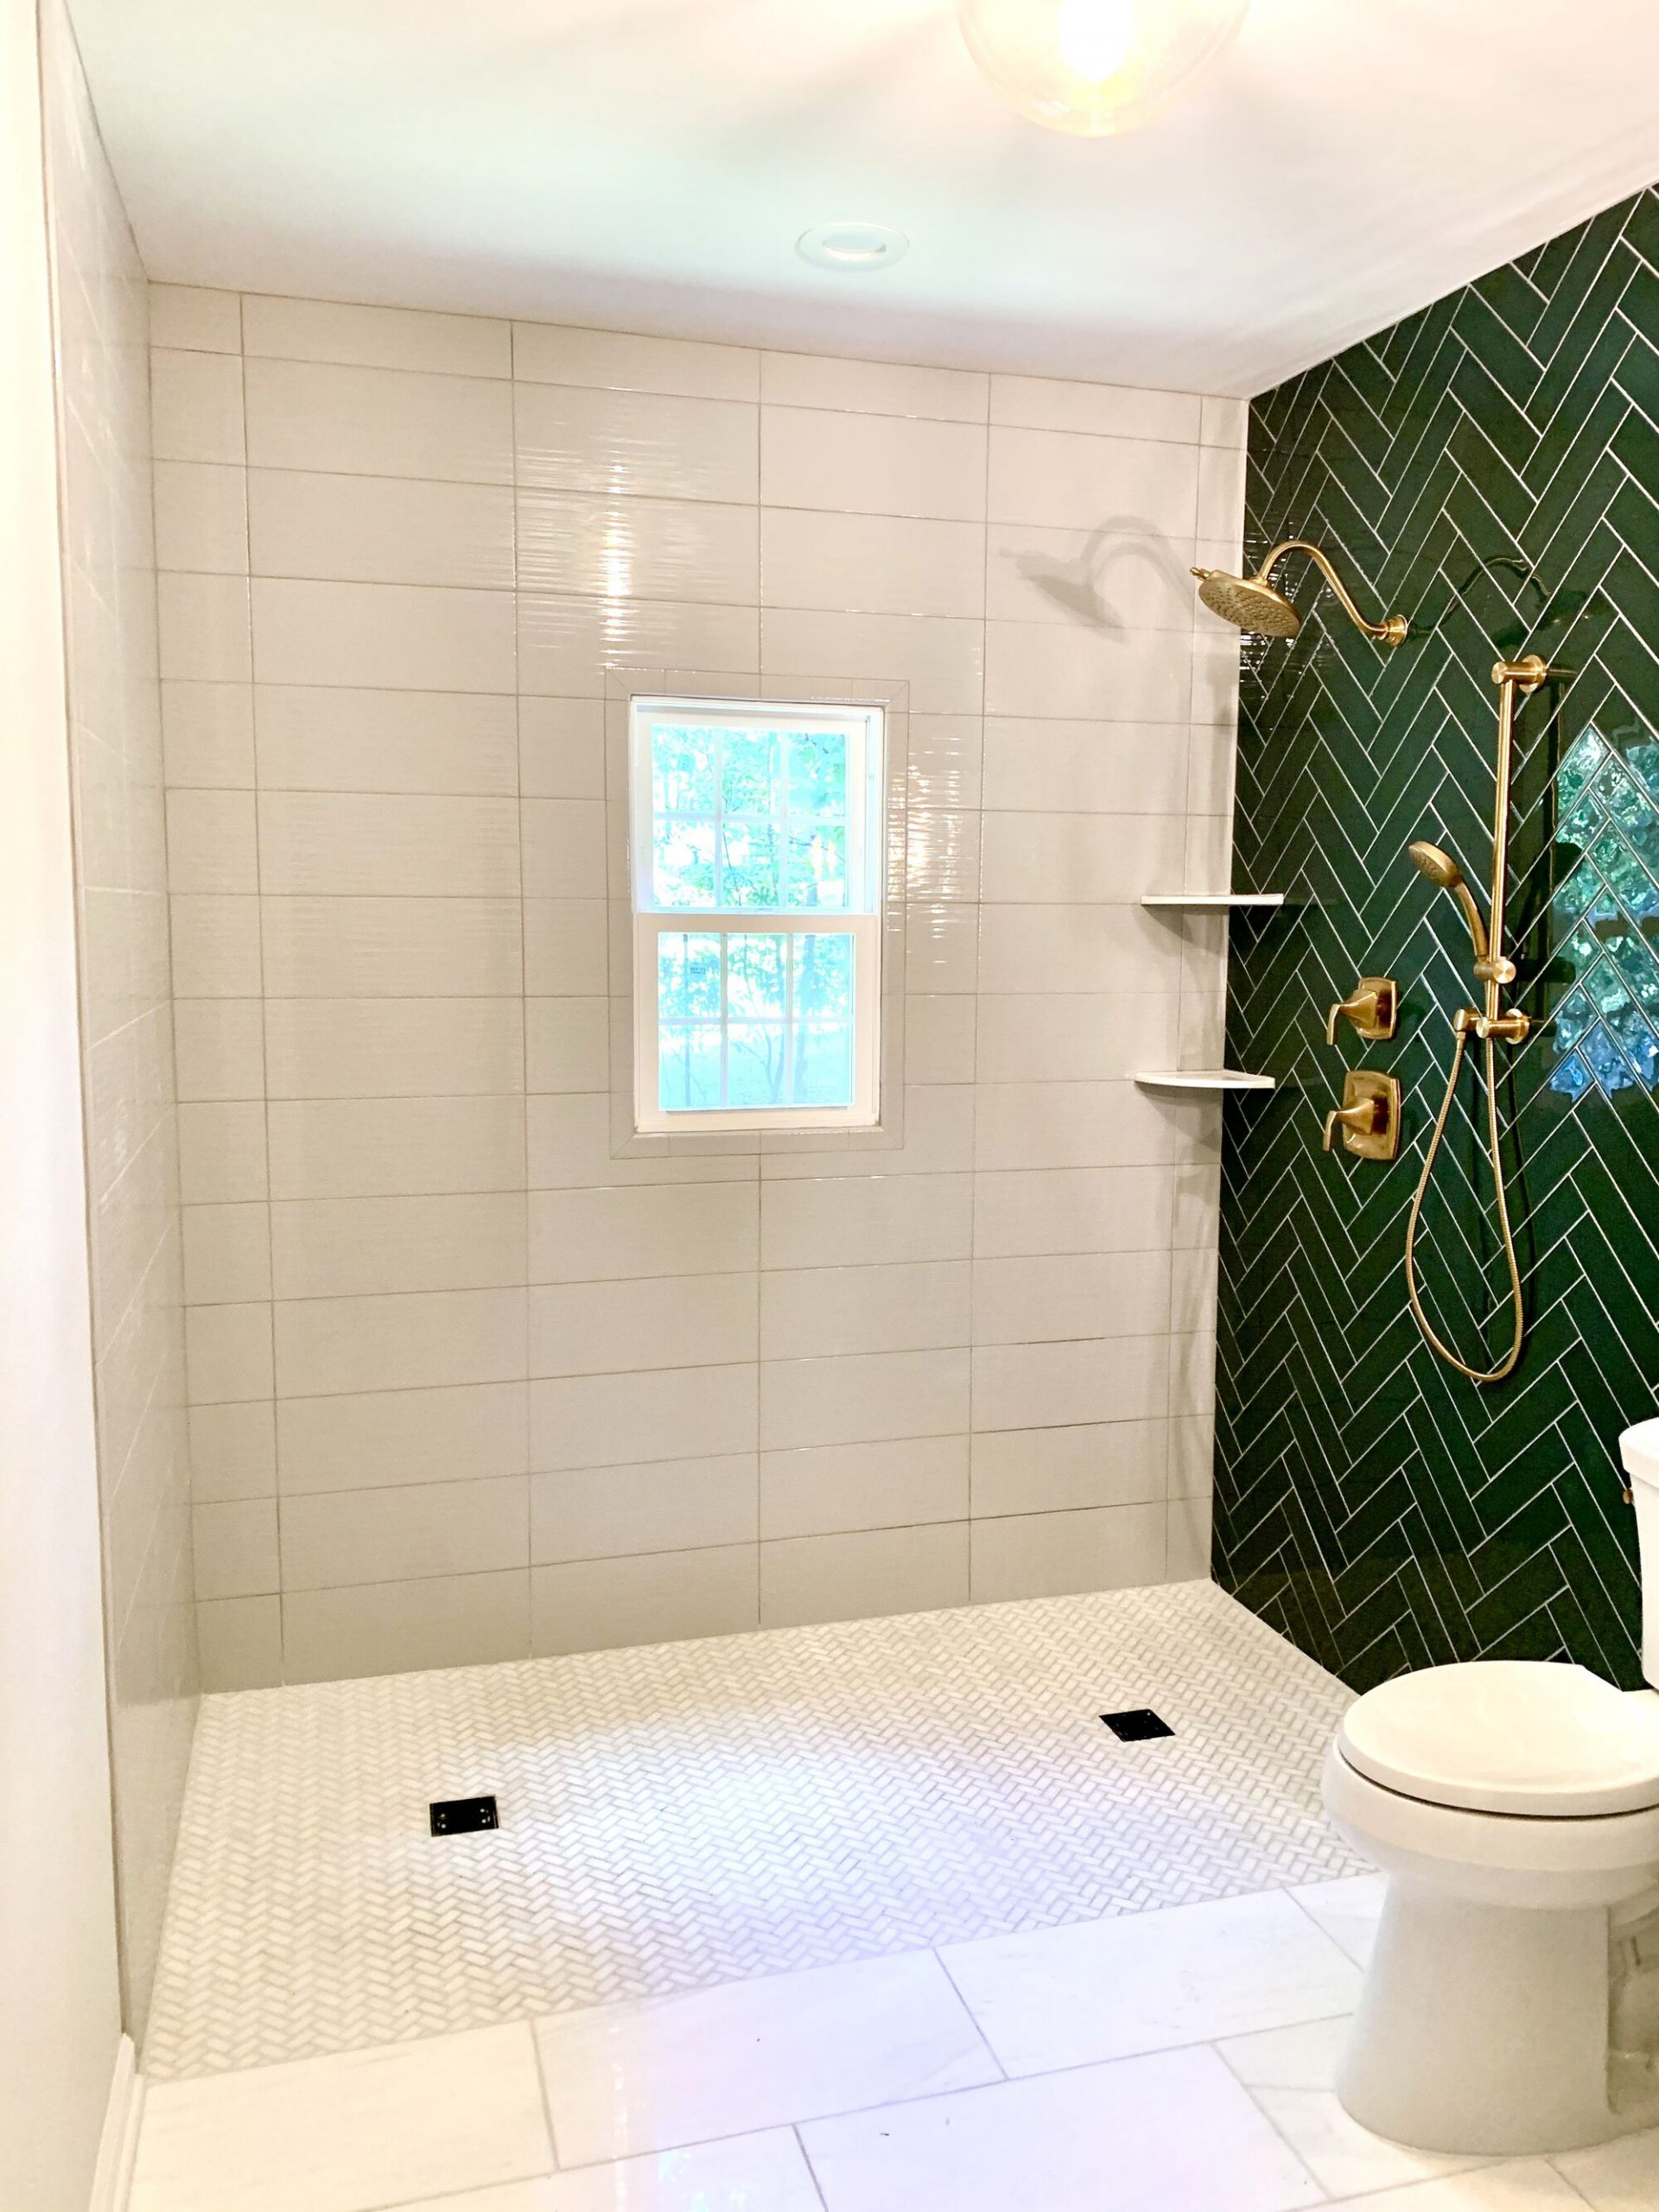 Zero Clearance Shower Floor, Herringbone Glass Tile Accent Wall, Polished Gold Faucets in Green Brook, Middlesex County NJ